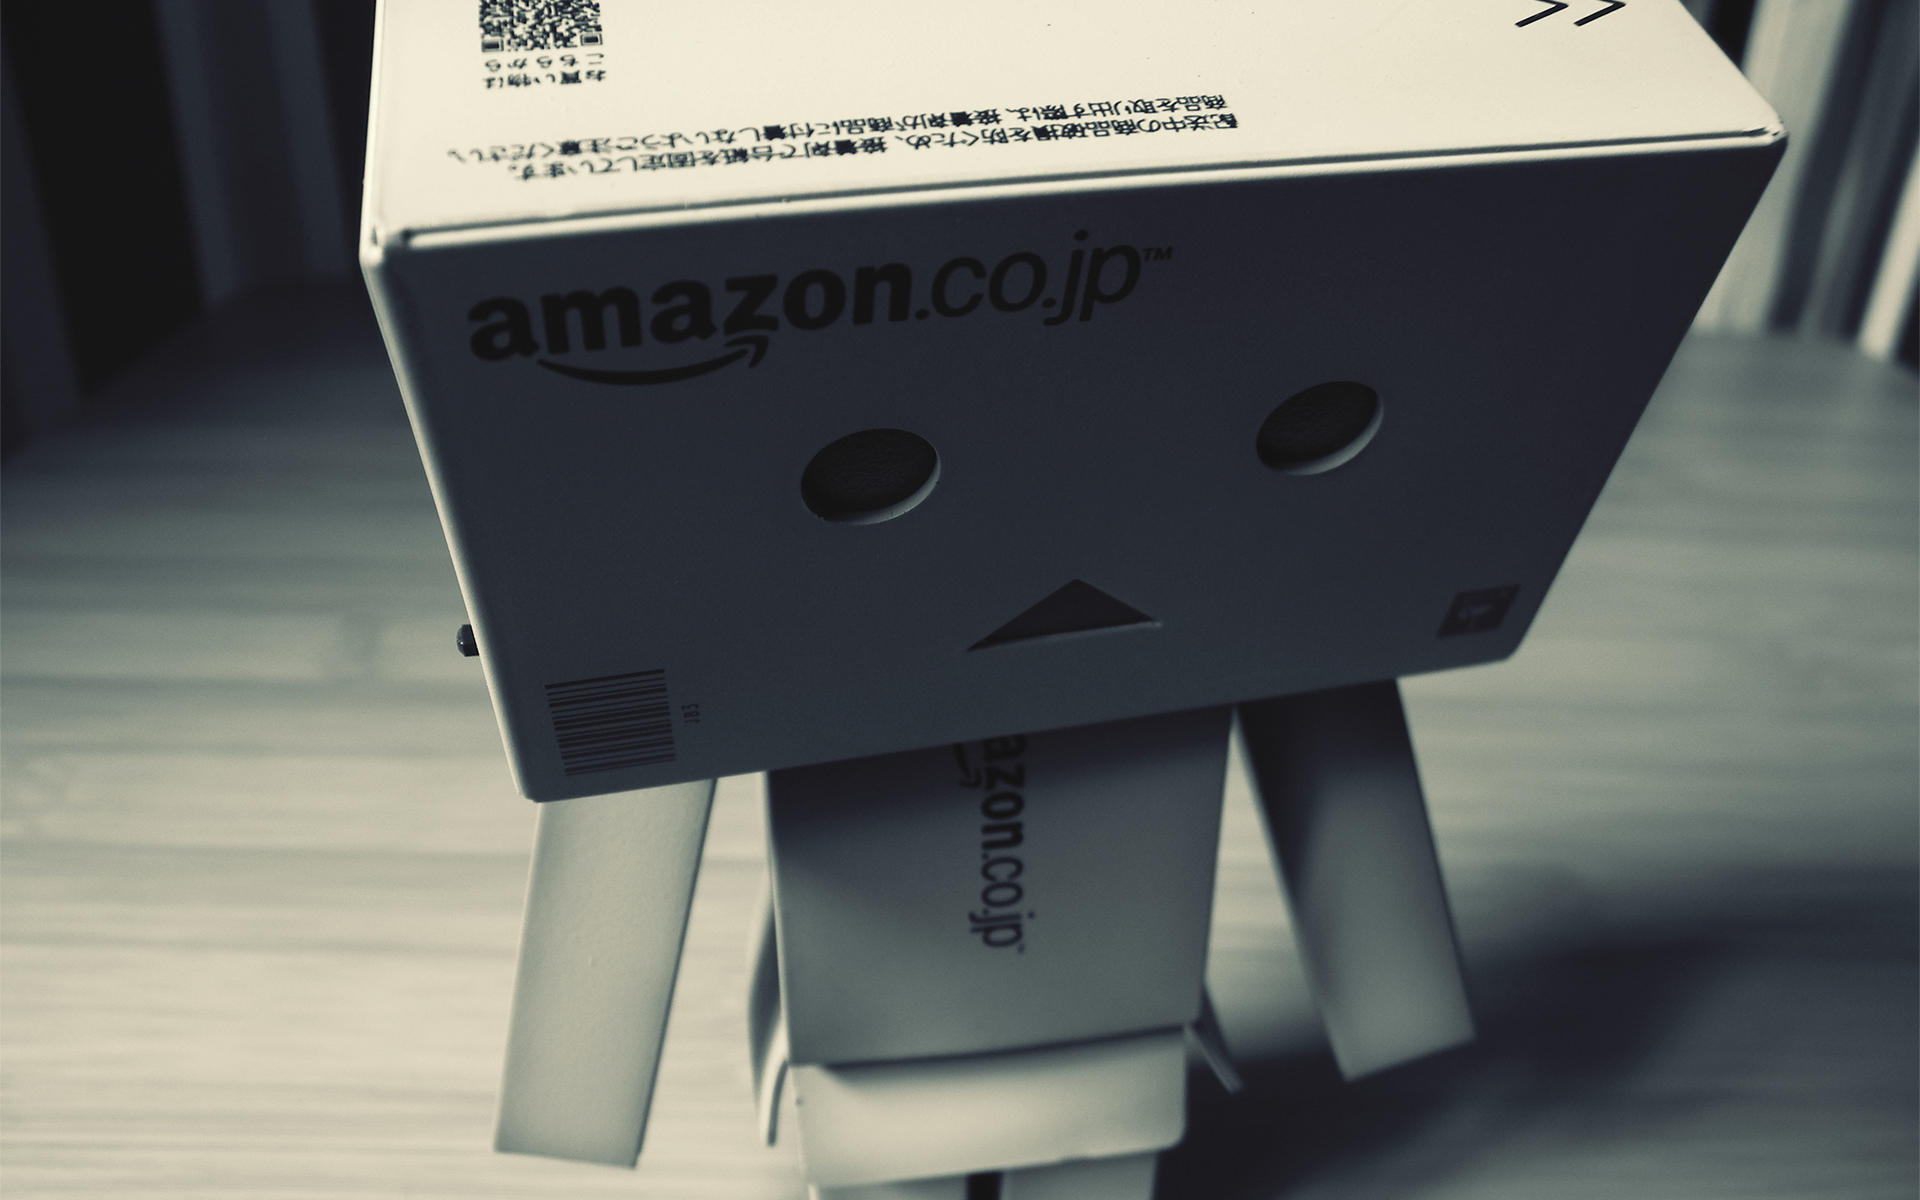 Sad Danbo by filsru